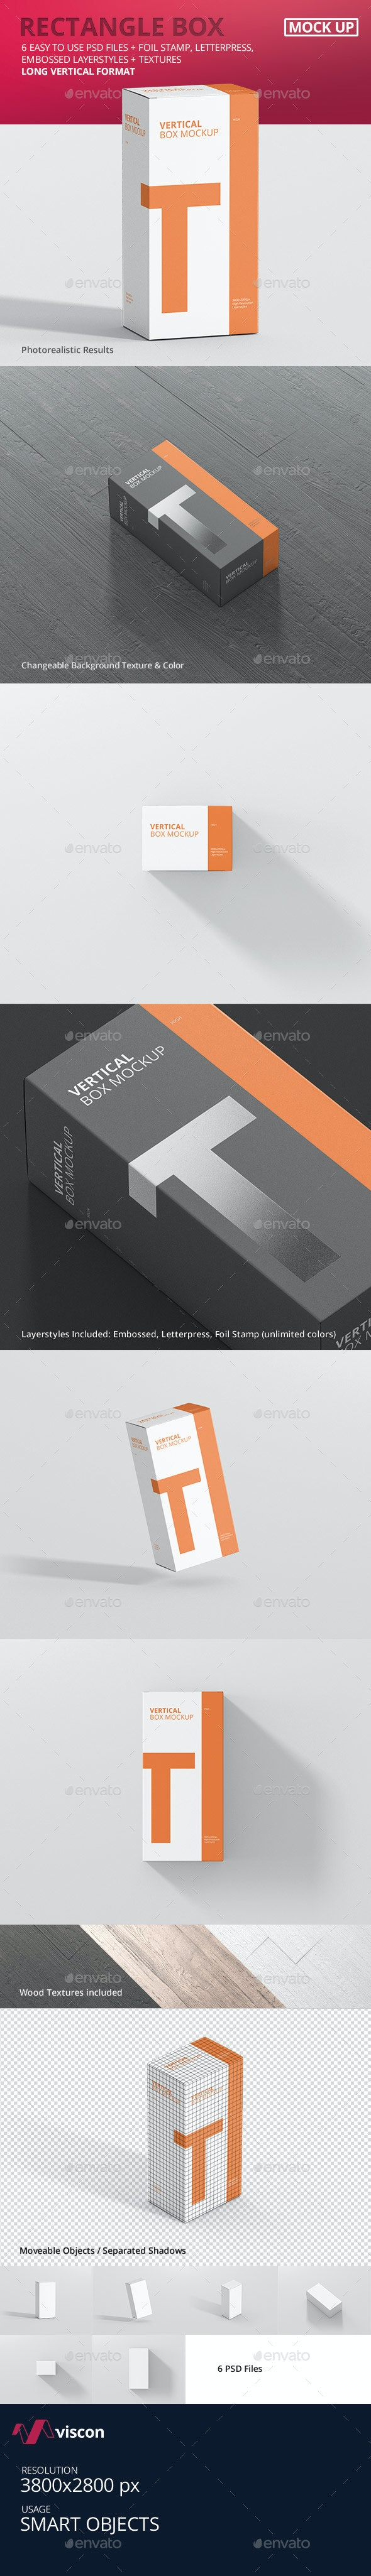 Box Mockup - Long Vertical Rectangle - Miscellaneous Packaging